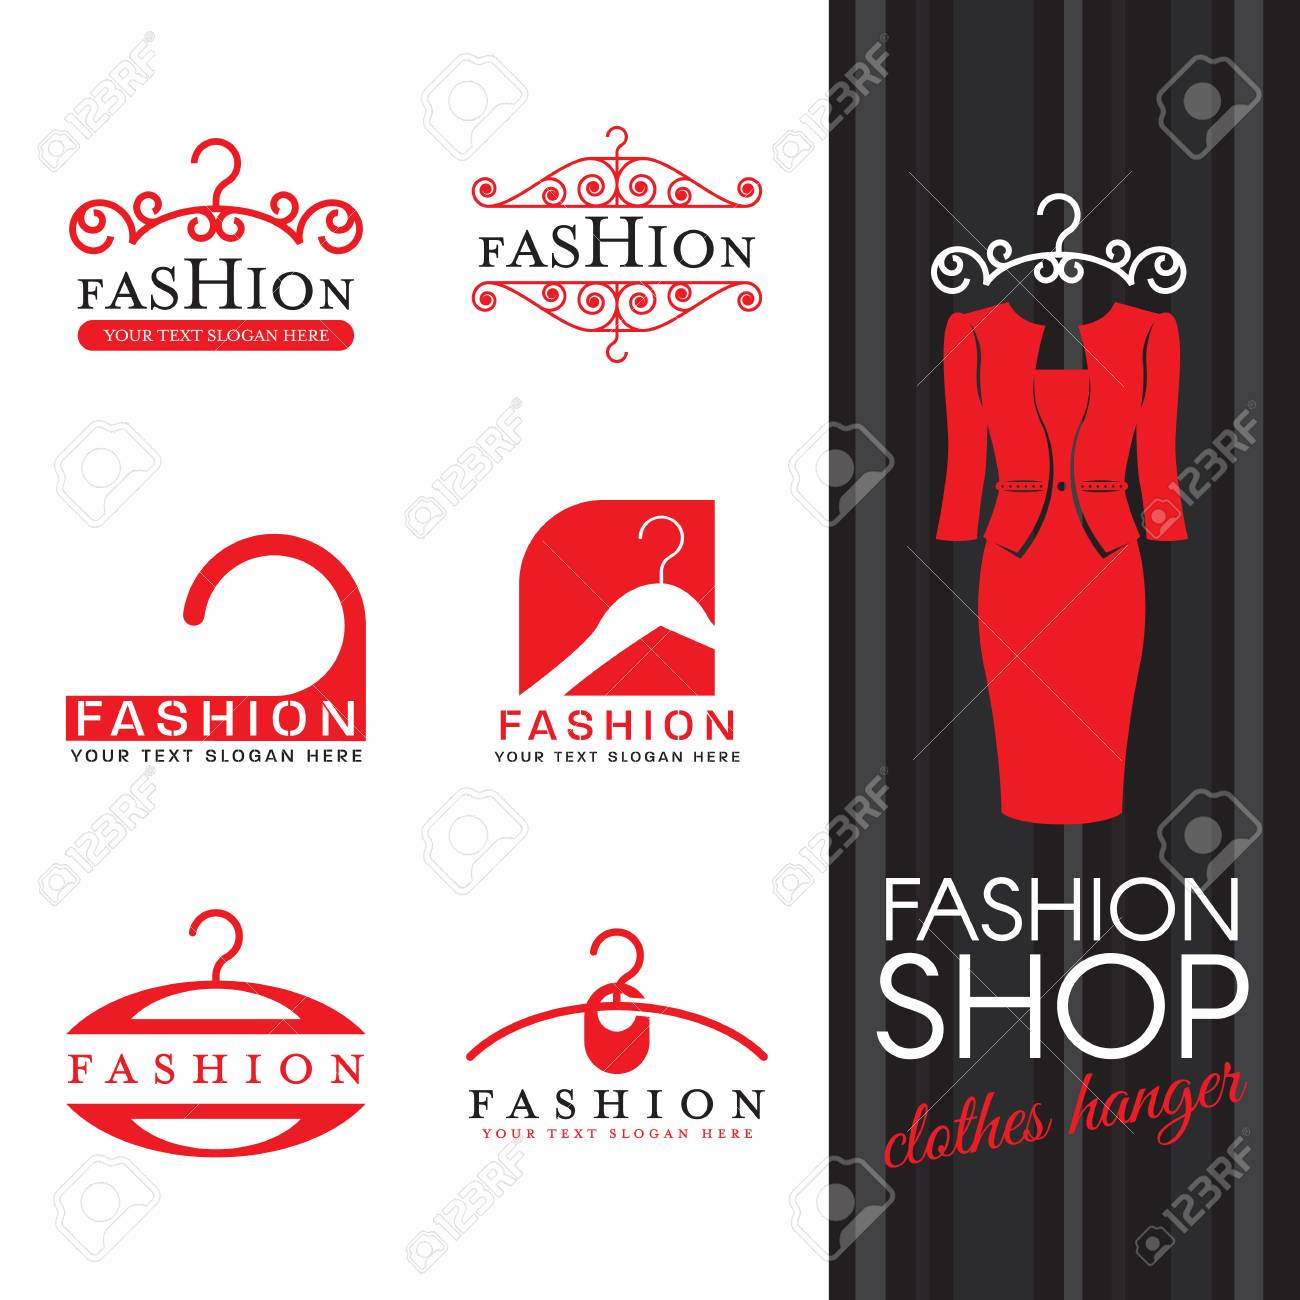 Fashion Shop Logo Red Clothes Hanger Logo Sign Vector Set Design Royalty Free Cliparts Vectors And Stock Illustration Image 91623133